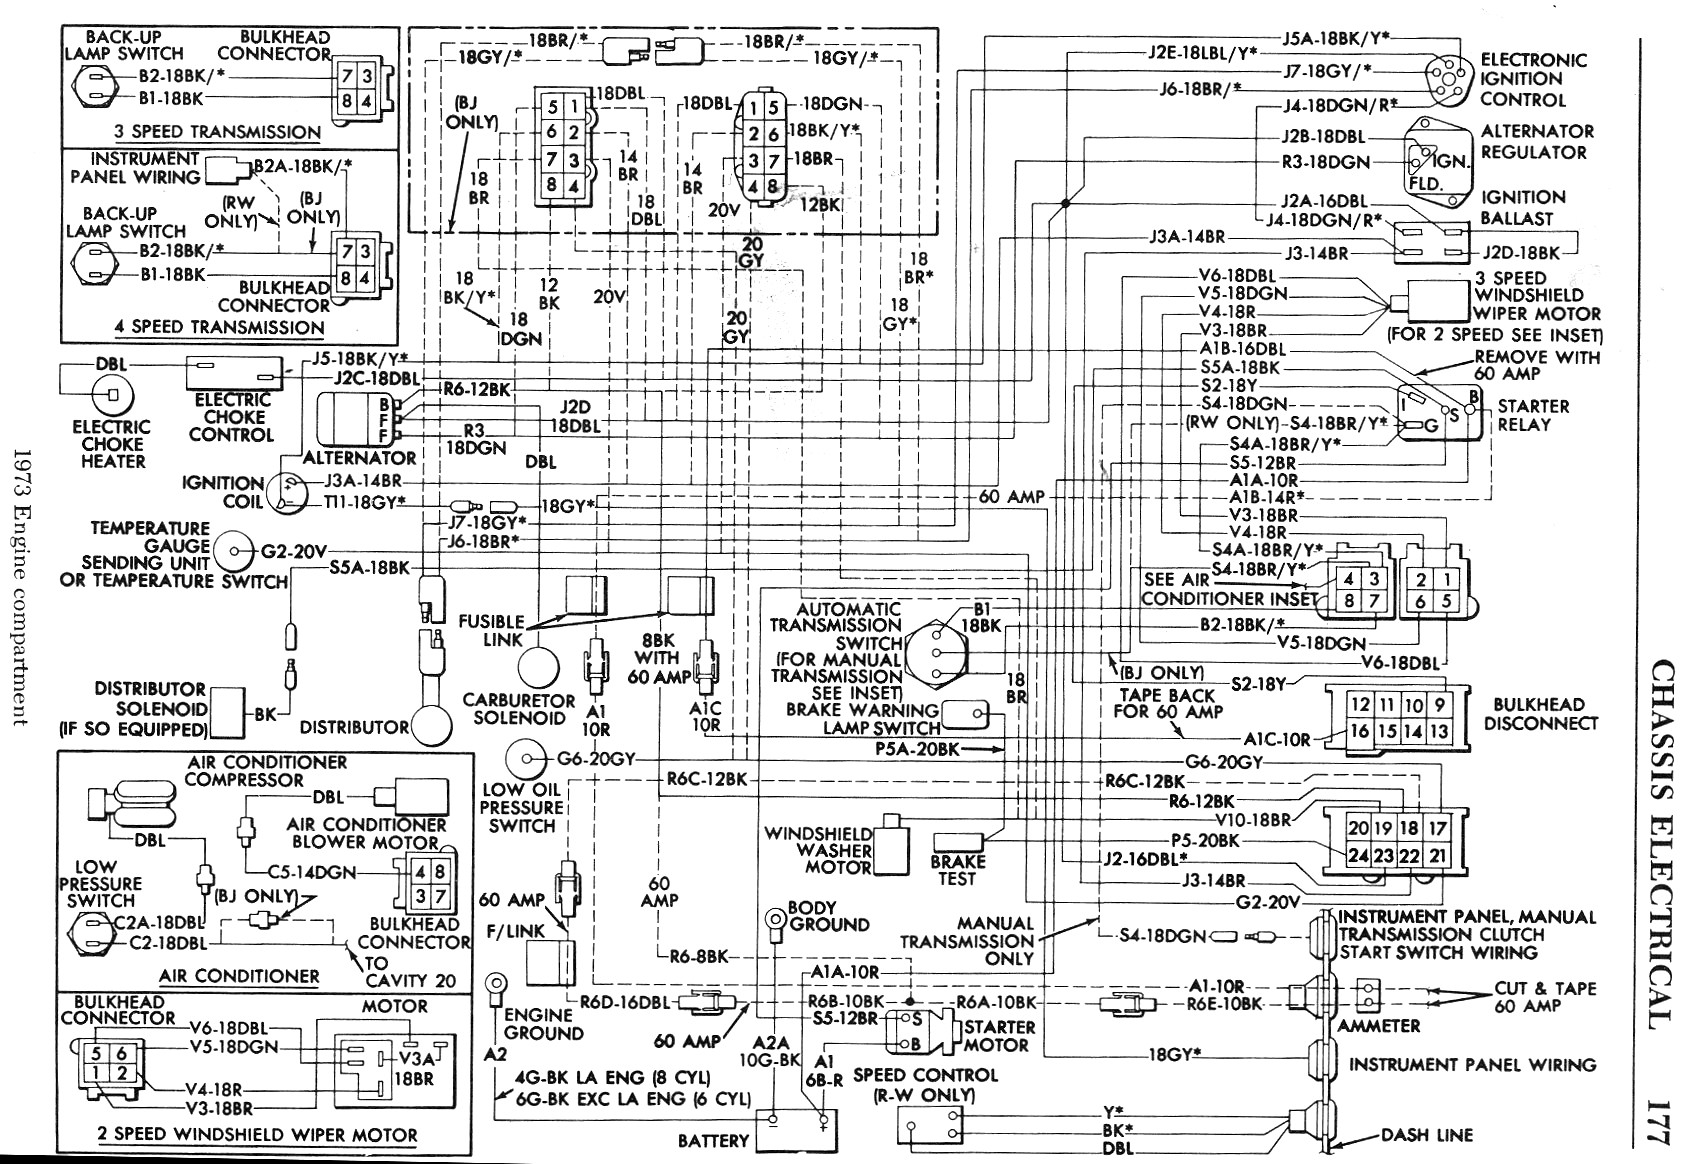 5098823 73B BodyEngineCompartmentWiringDiagram mopar wiring diagram powerflex 755 wiring diagrams \u2022 free wiring 1969 plymouth satellite wiring diagram at n-0.co